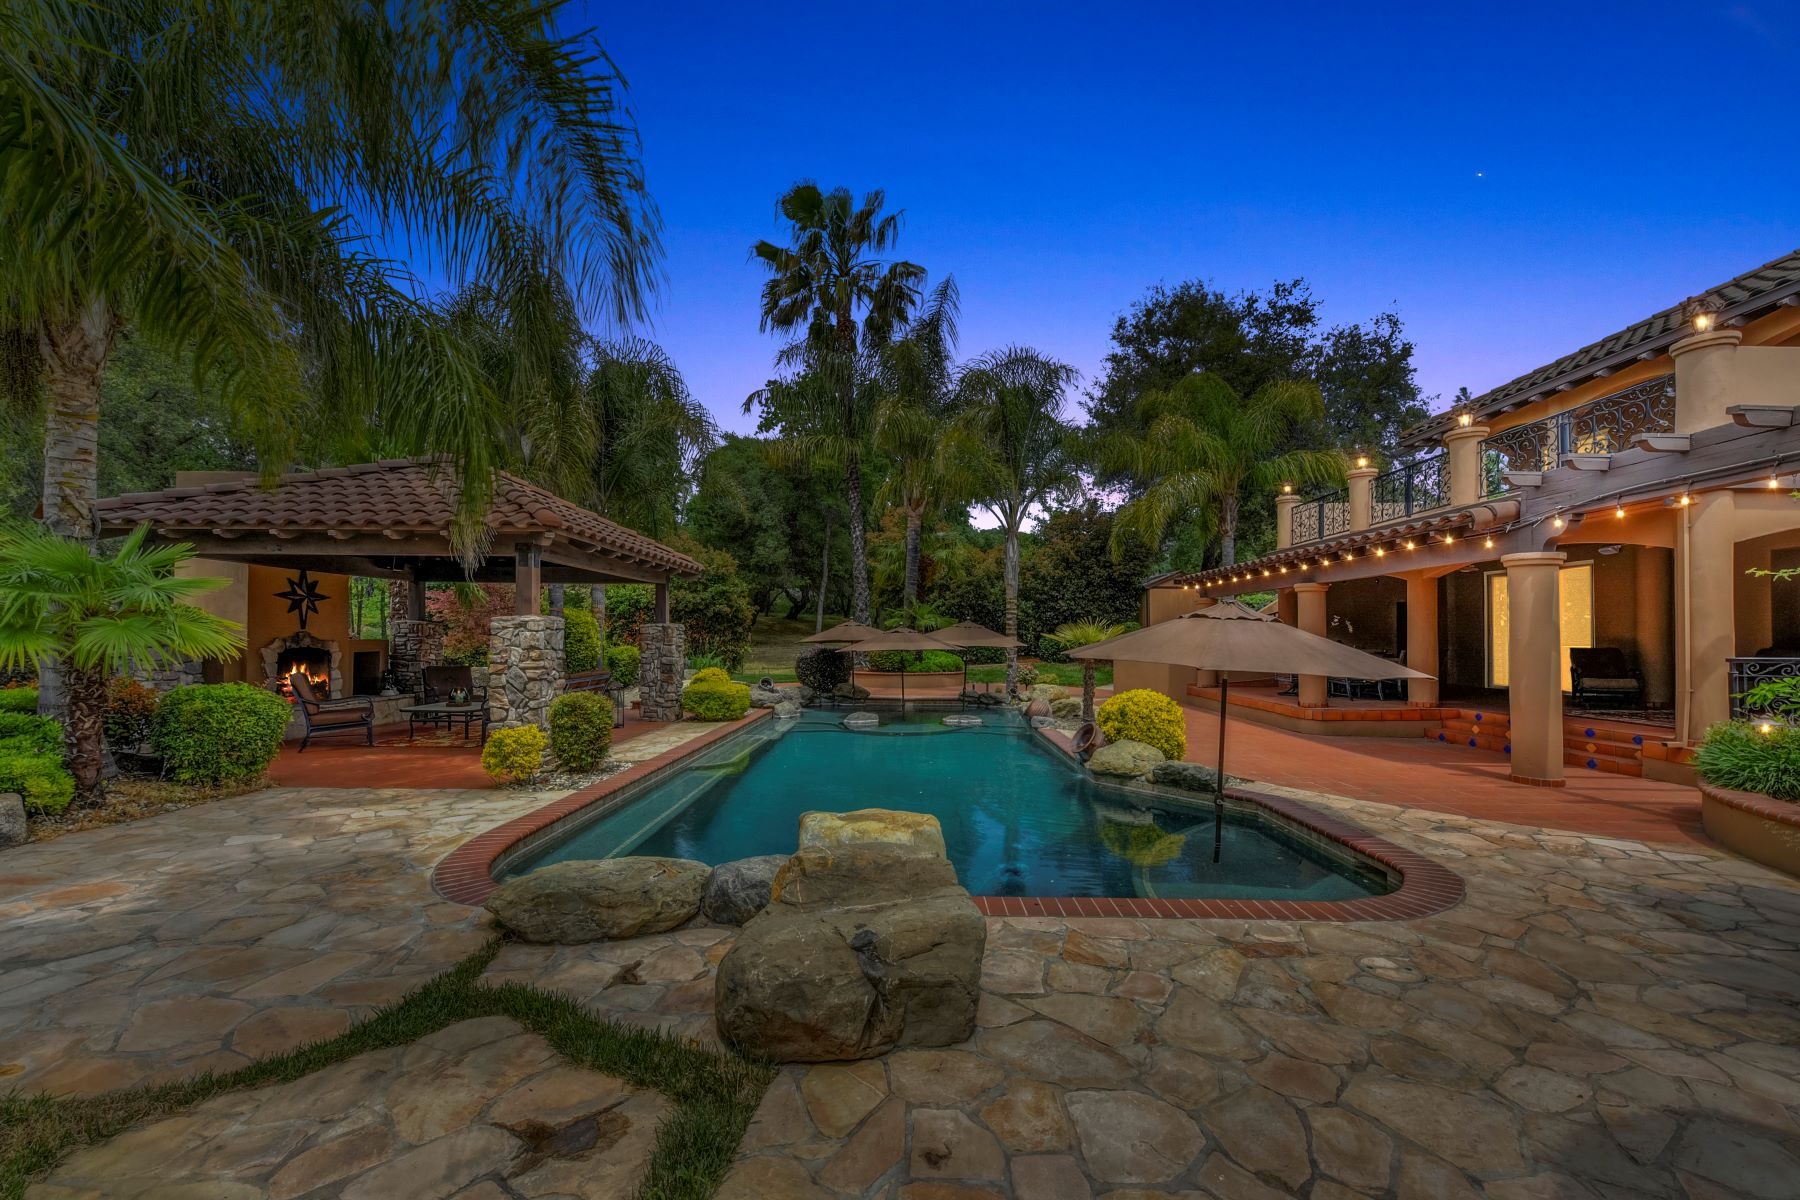 Single Family Home for Active at 1105 Park Lake Ct, Newcastle, CA 95658 1105 Park Lake Court Newcastle, California 95658 United States